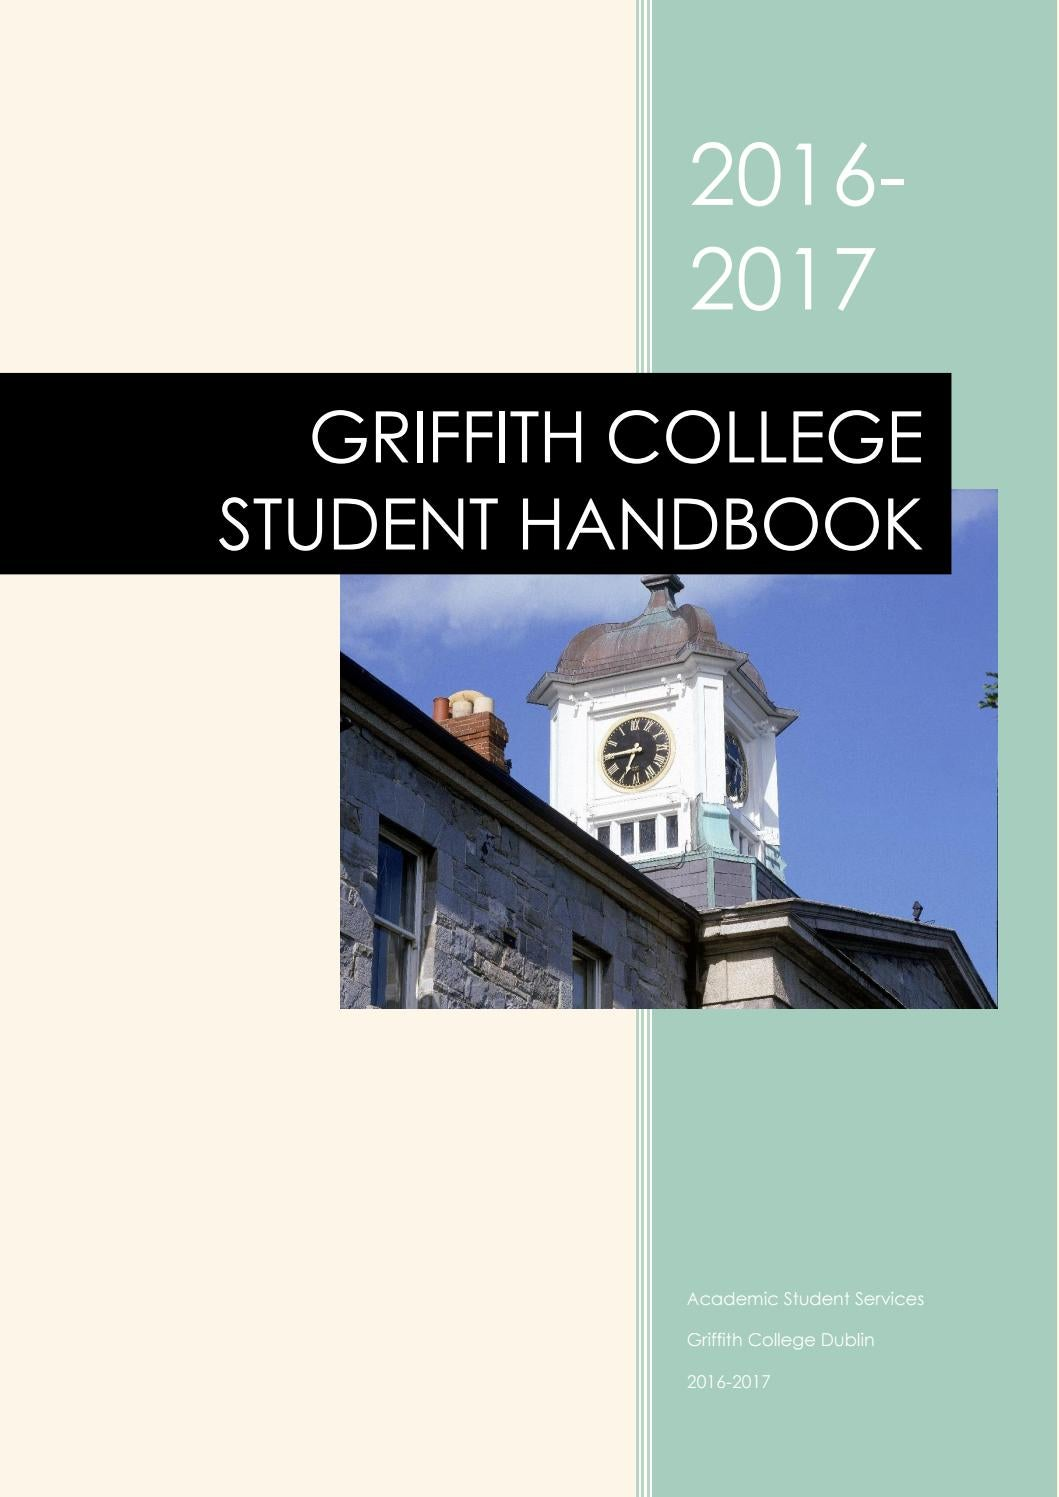 student handbook for writing thesis proposal Pet food  topics  student handbook for writing thesis proposal  2016 2017 student handbook final 7  to communicate when writing a research proposal:.